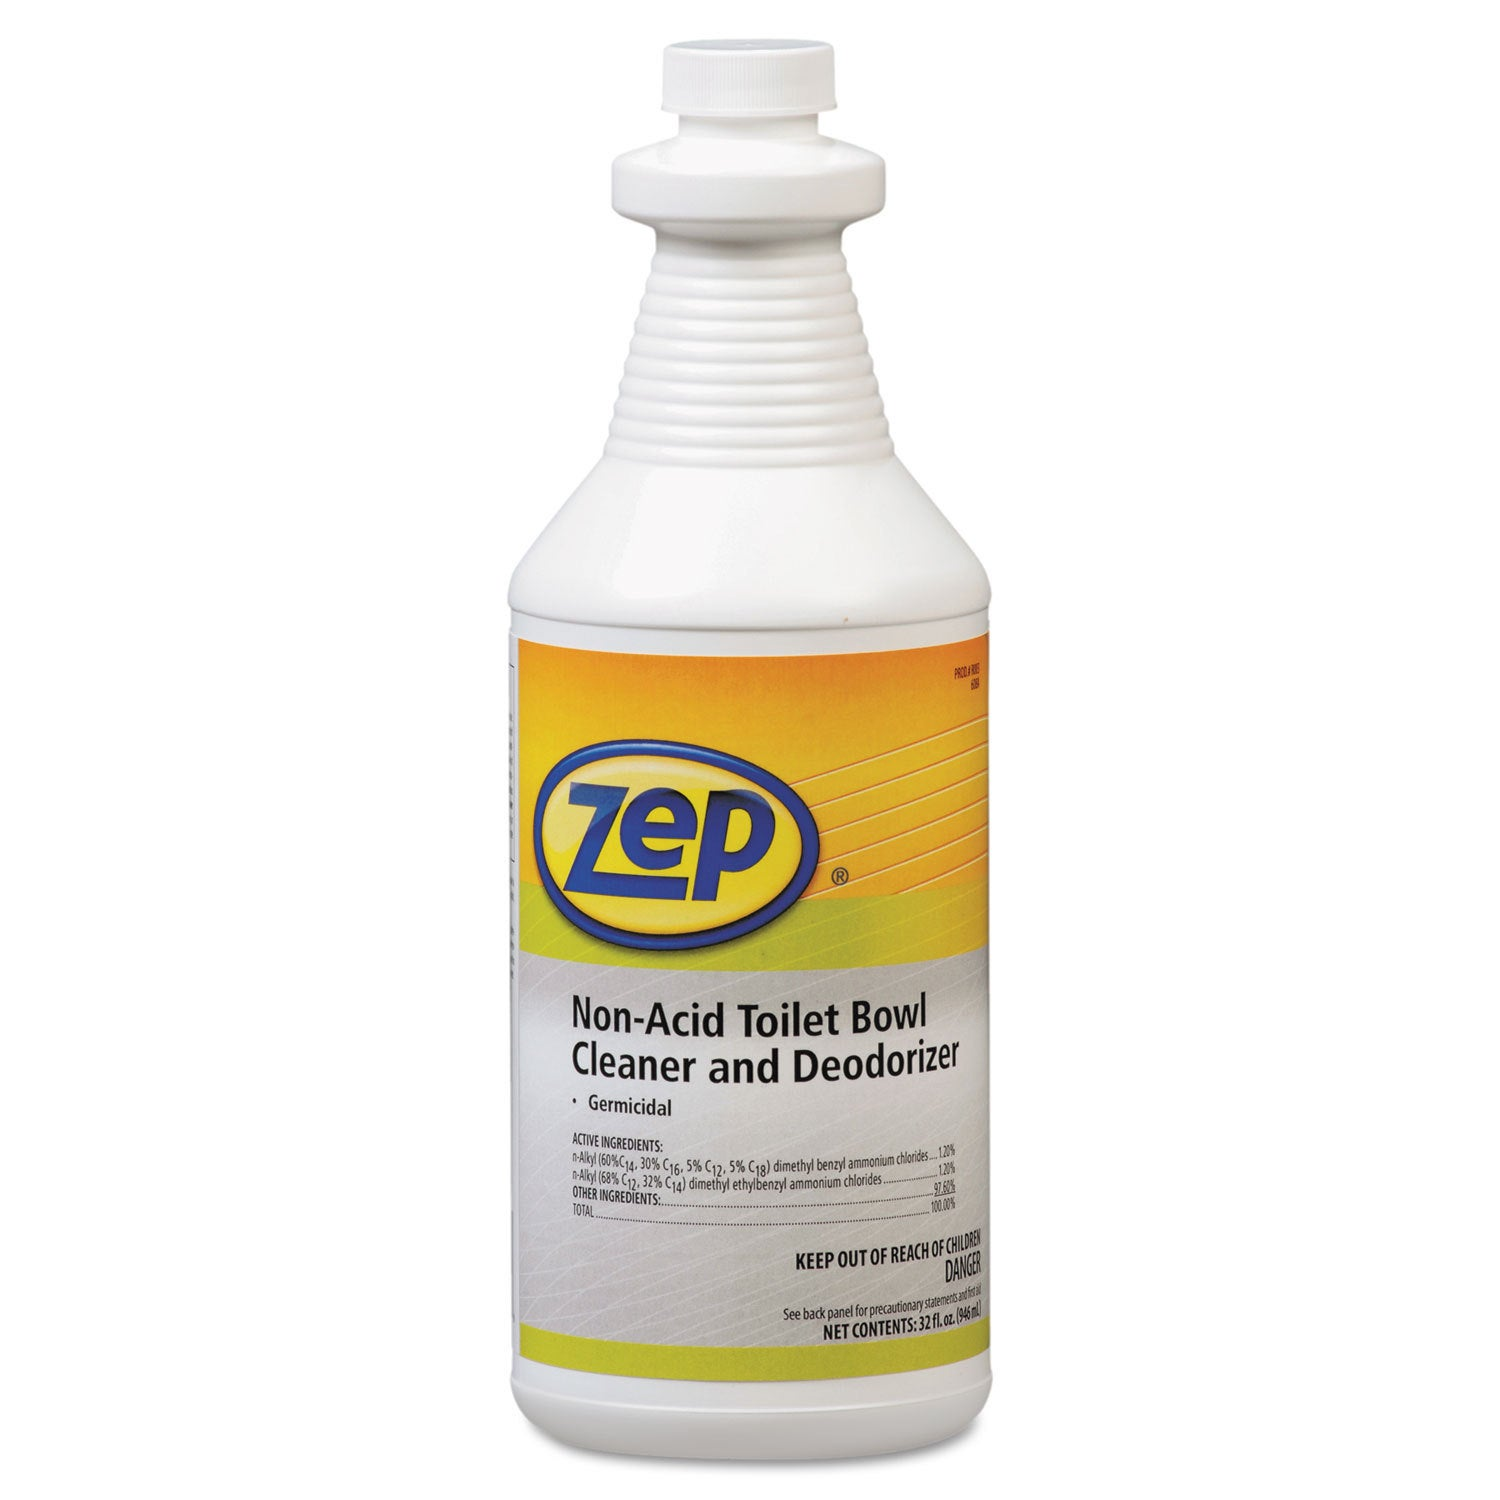 ZEP Professional Toilet Bowl Cleaner Non-Acid qt Bottle, ...